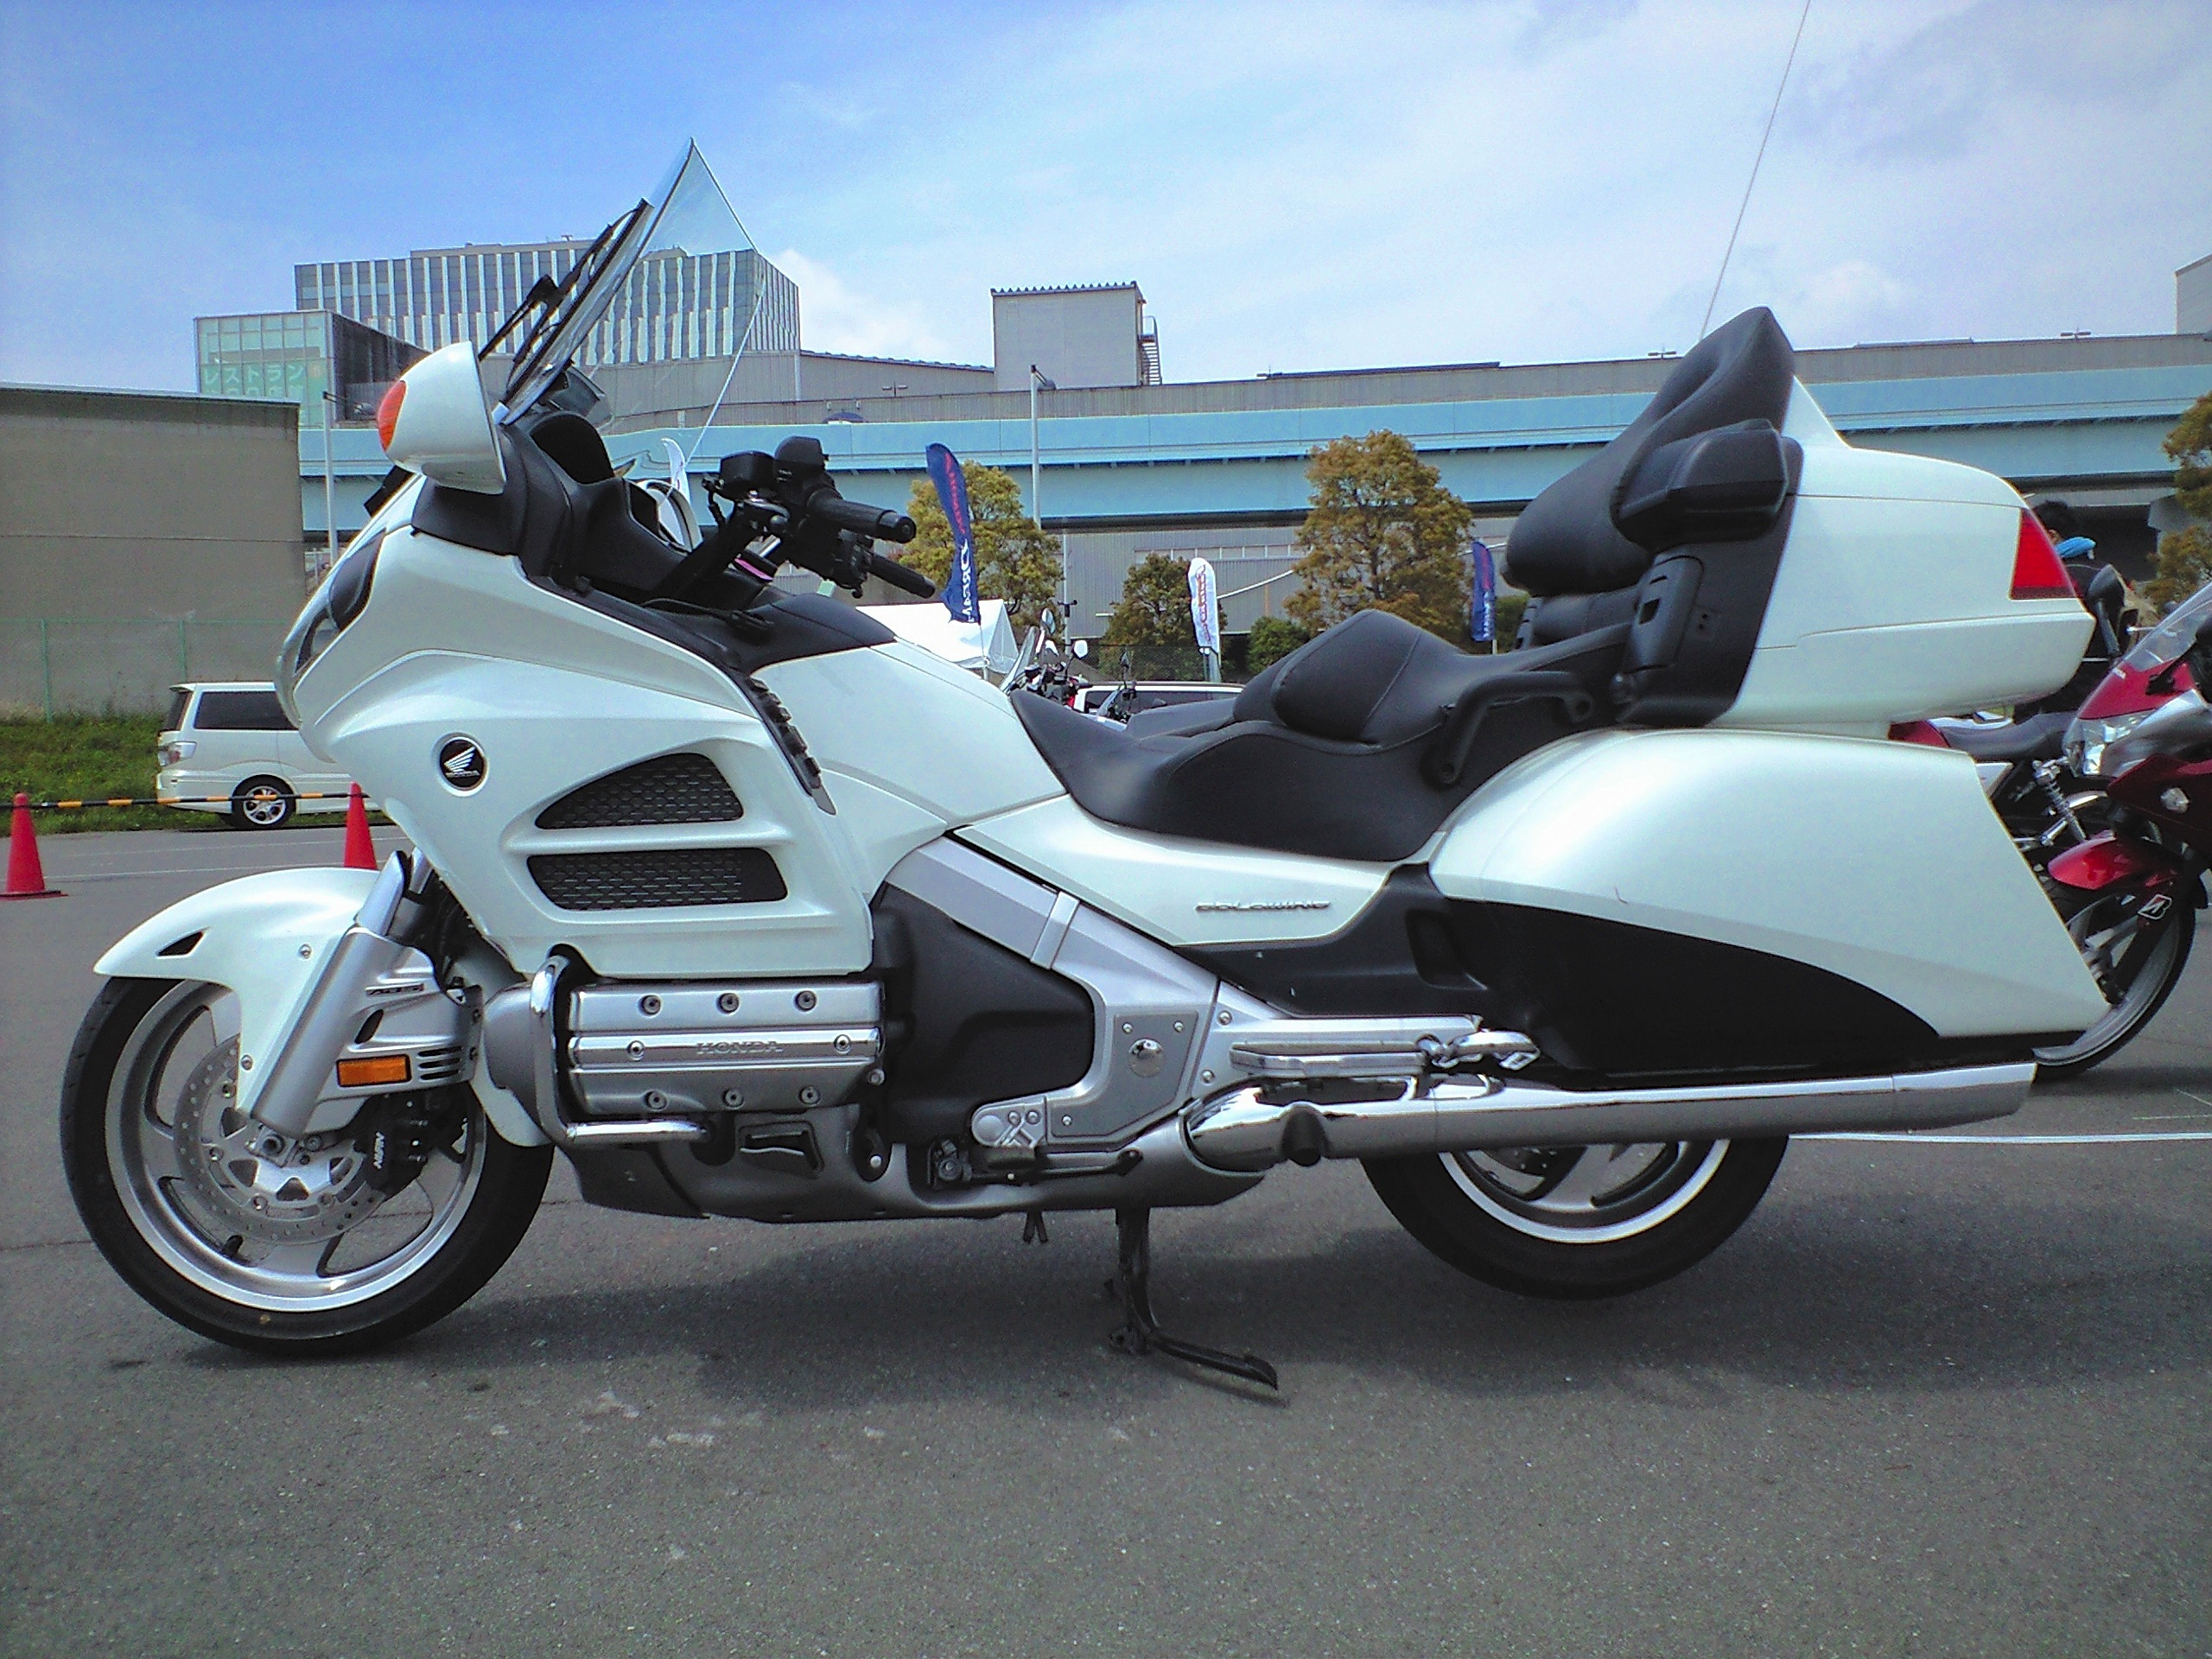 Honda GL 1800 Gold Wing 2007 images #82138